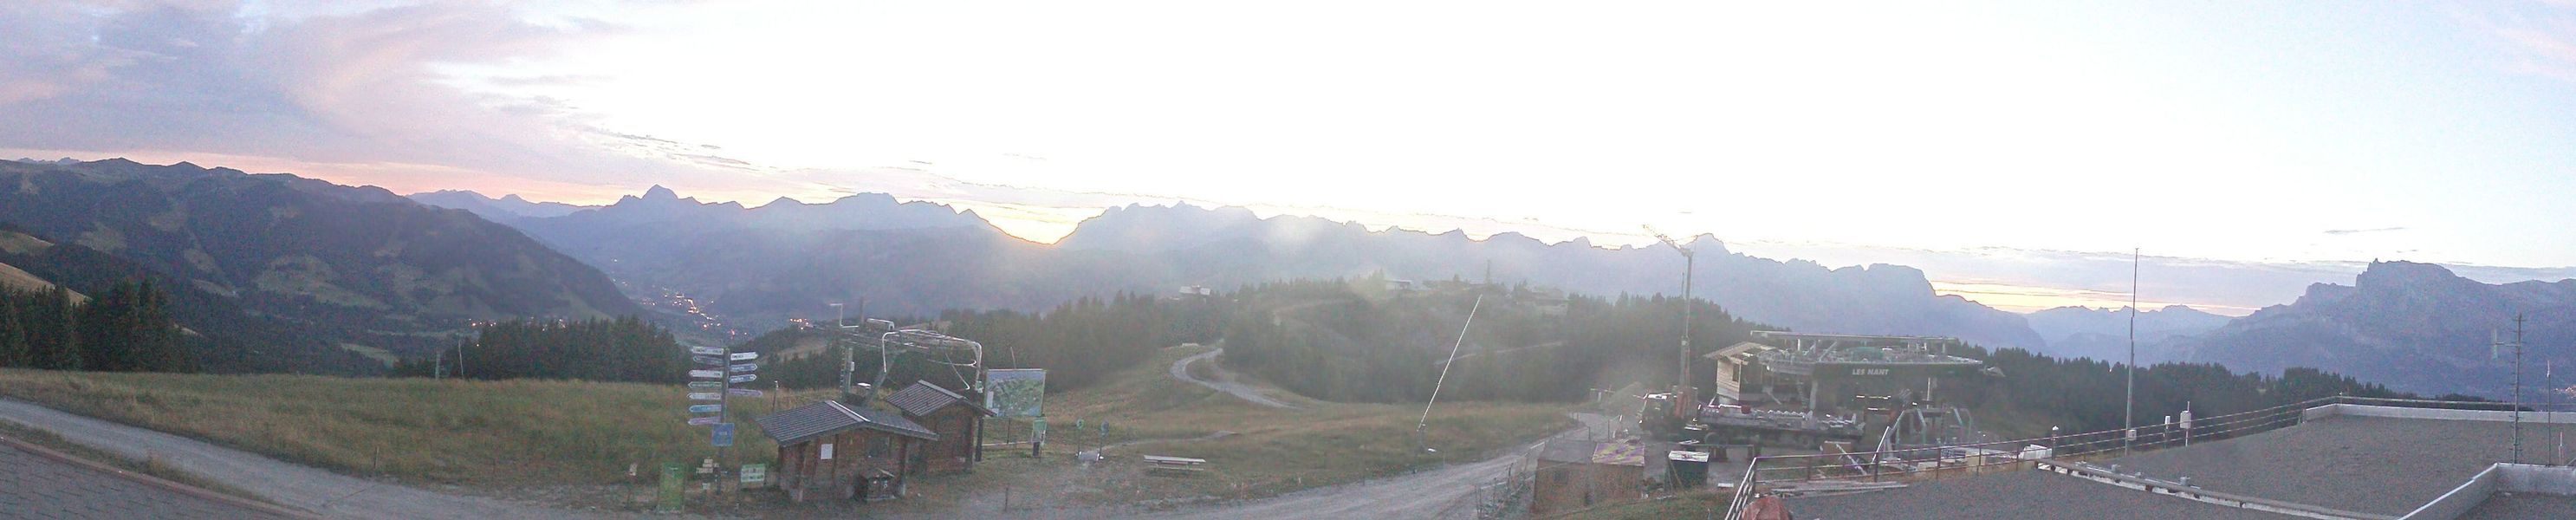 St Gervais - Freddy Webcam